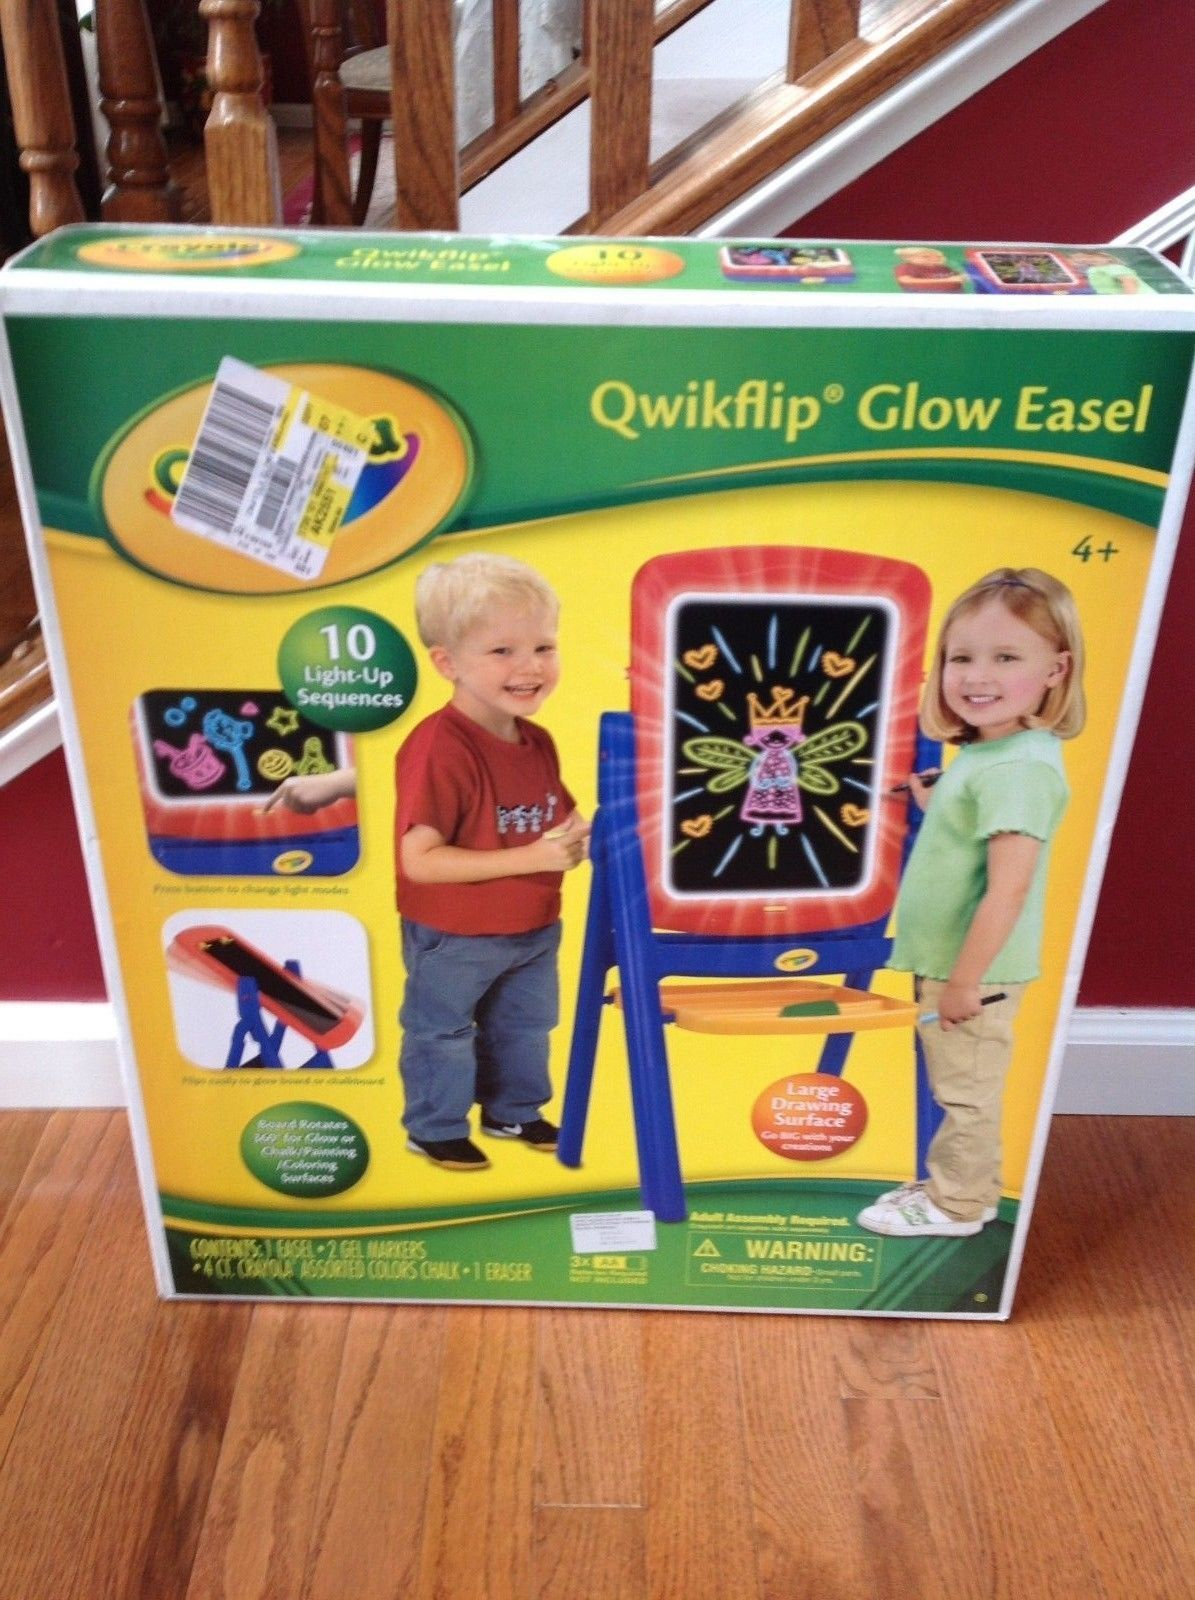 Primary image for Crayola Qwikflip Glow Easel 10 Light-up Sequences Chalk Board Age 4+